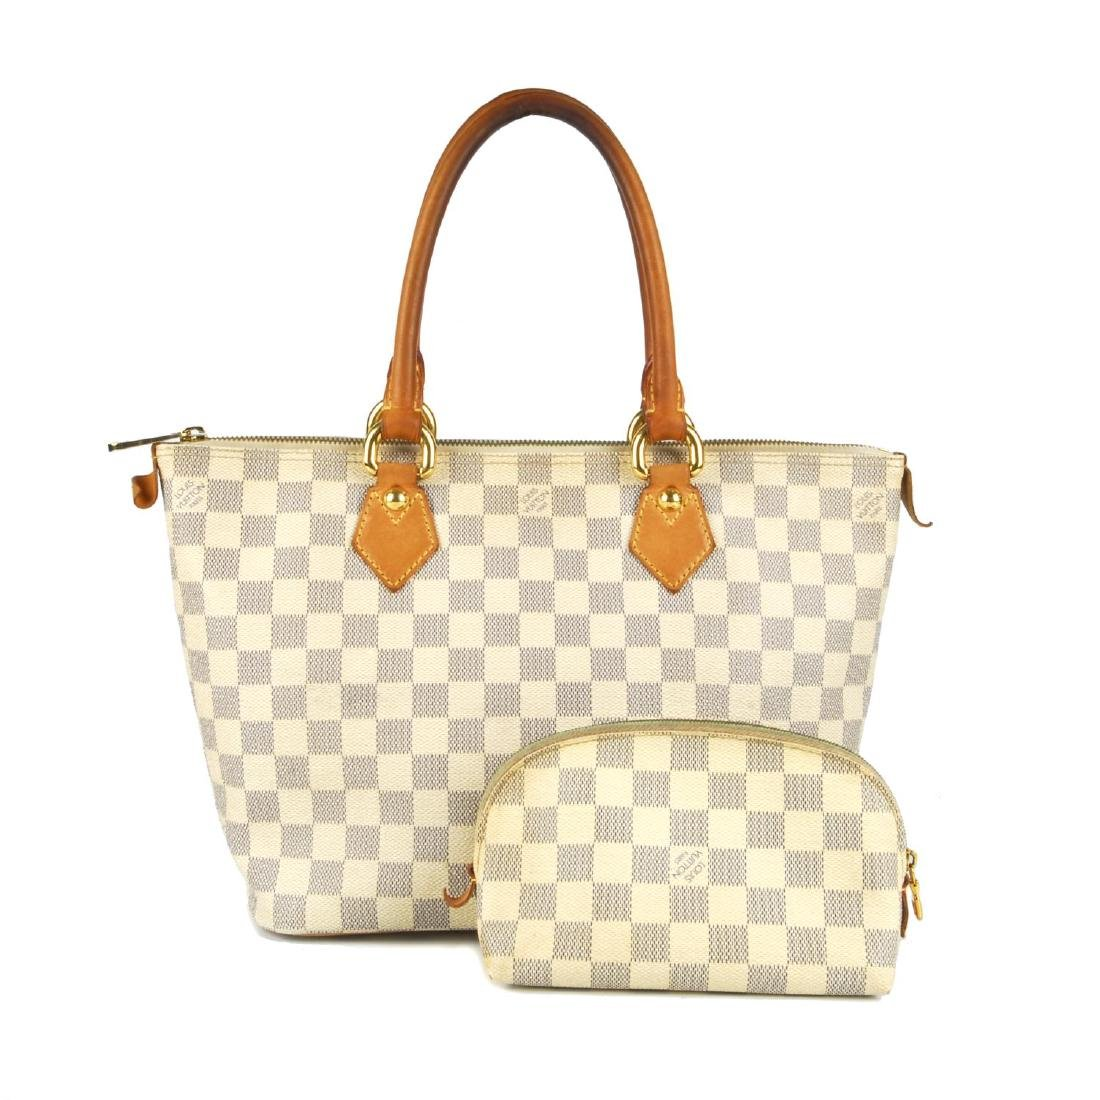 LOUIS VUITTON - a Damier Azur Saleya handbag and a